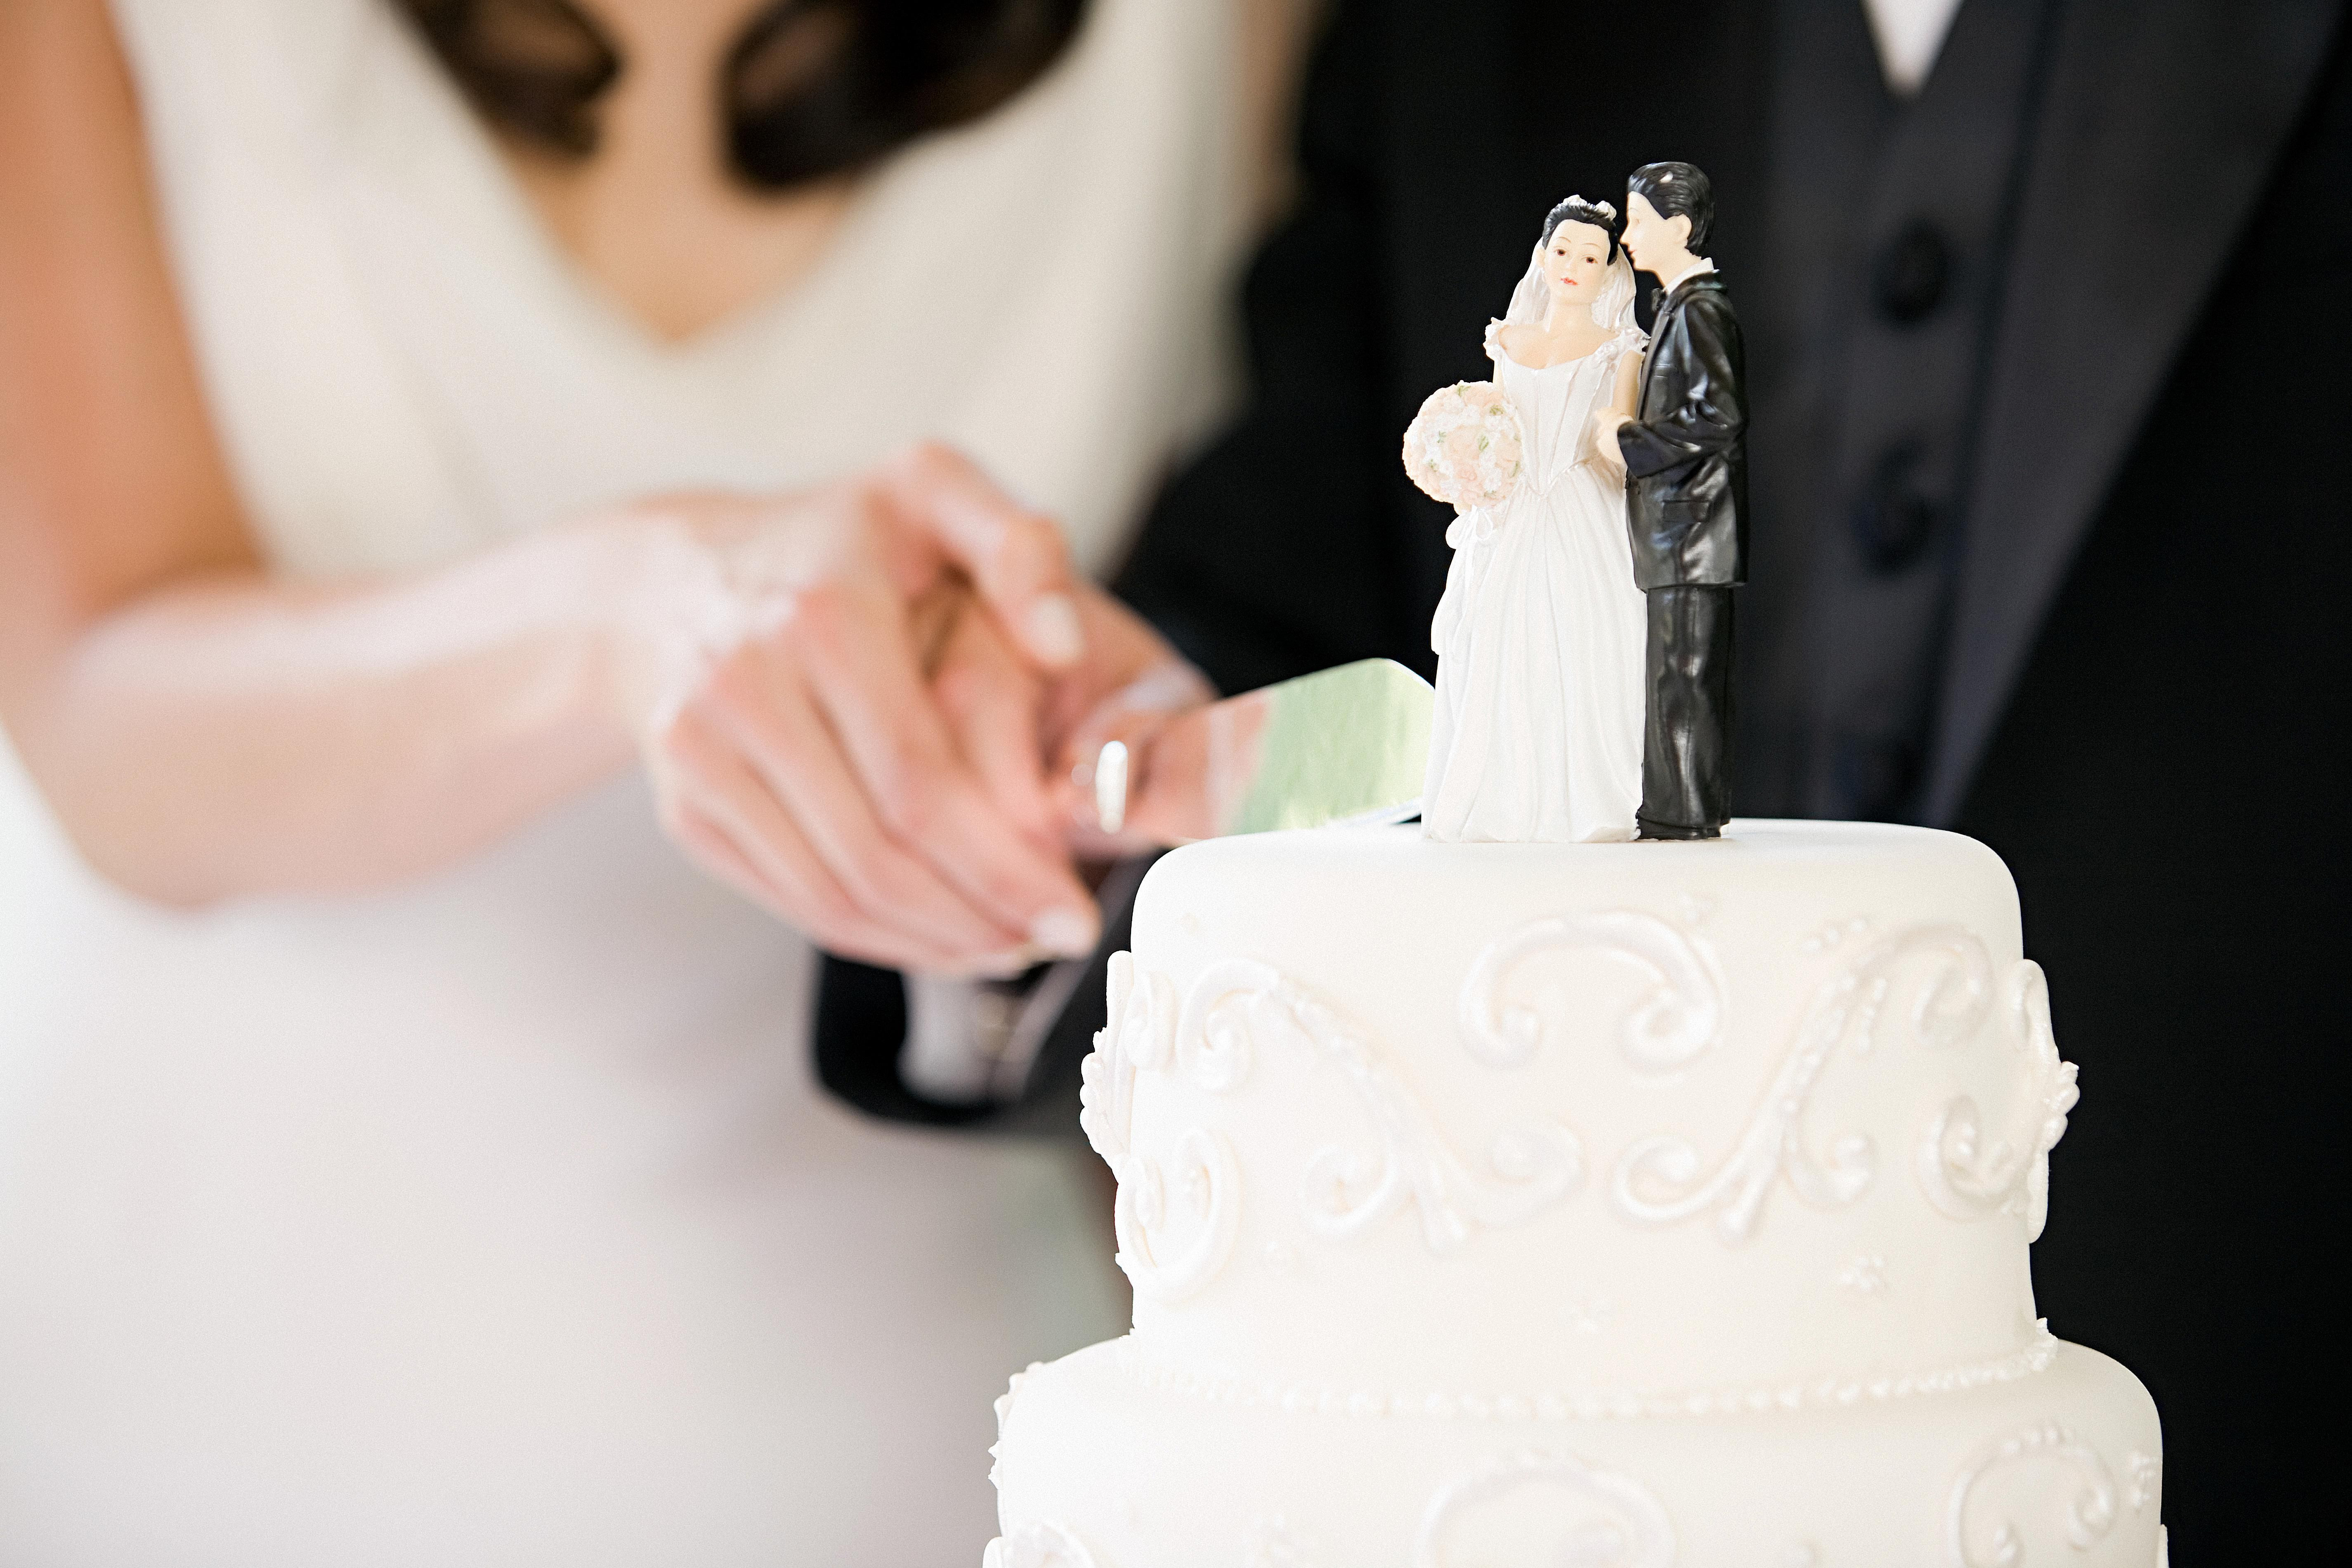 Wedding Cakes Cutting  7 Wedding Cake Traditions and Their Meanings